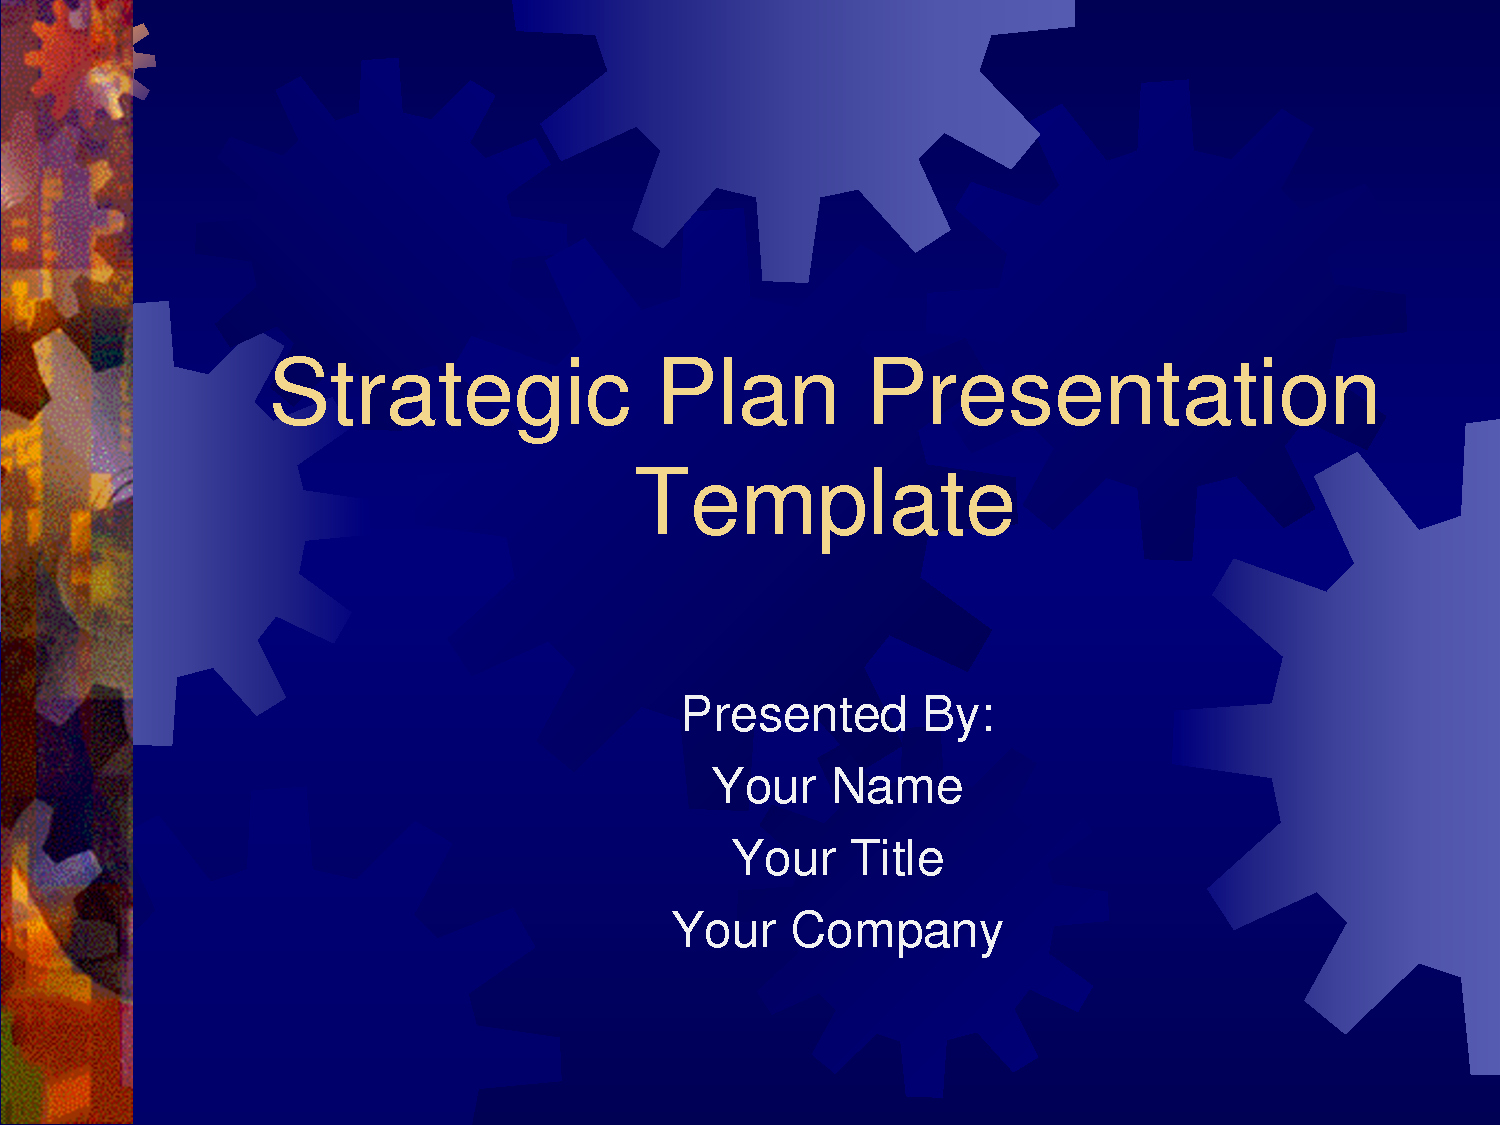 Strategic Planning Template Free Elegant Strategic Plan Powerpoint Templates Business Plan